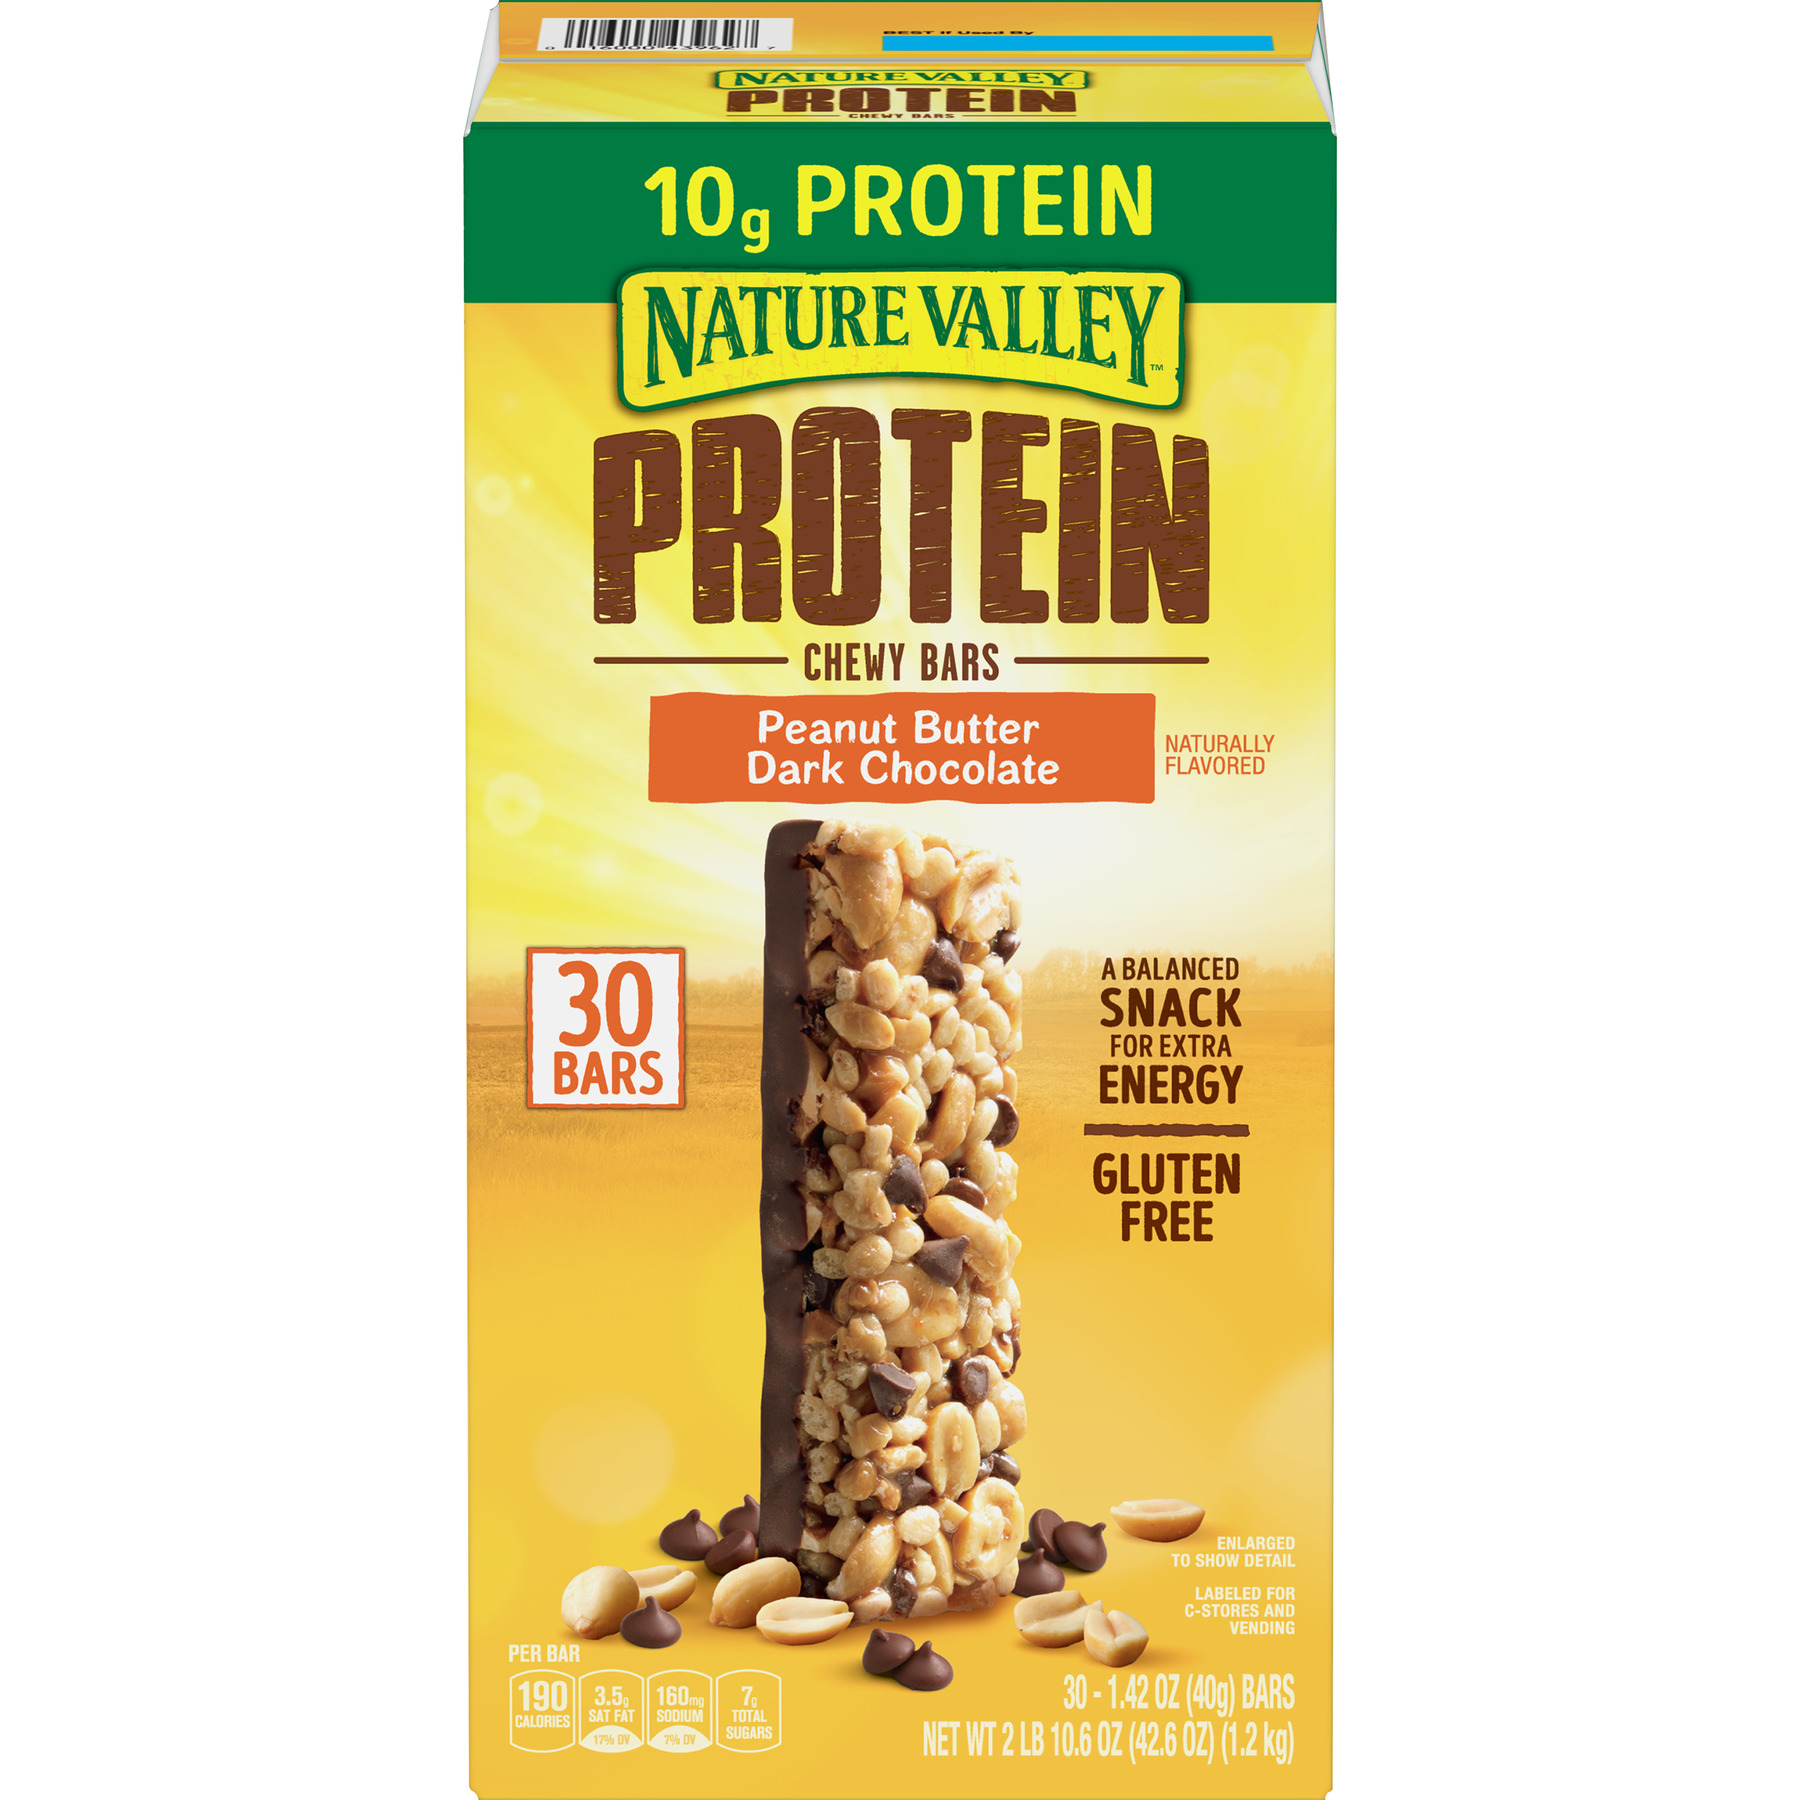 Nature Valley Protein Chewy Peanut Butter Dark Chocolate Bars 30CT